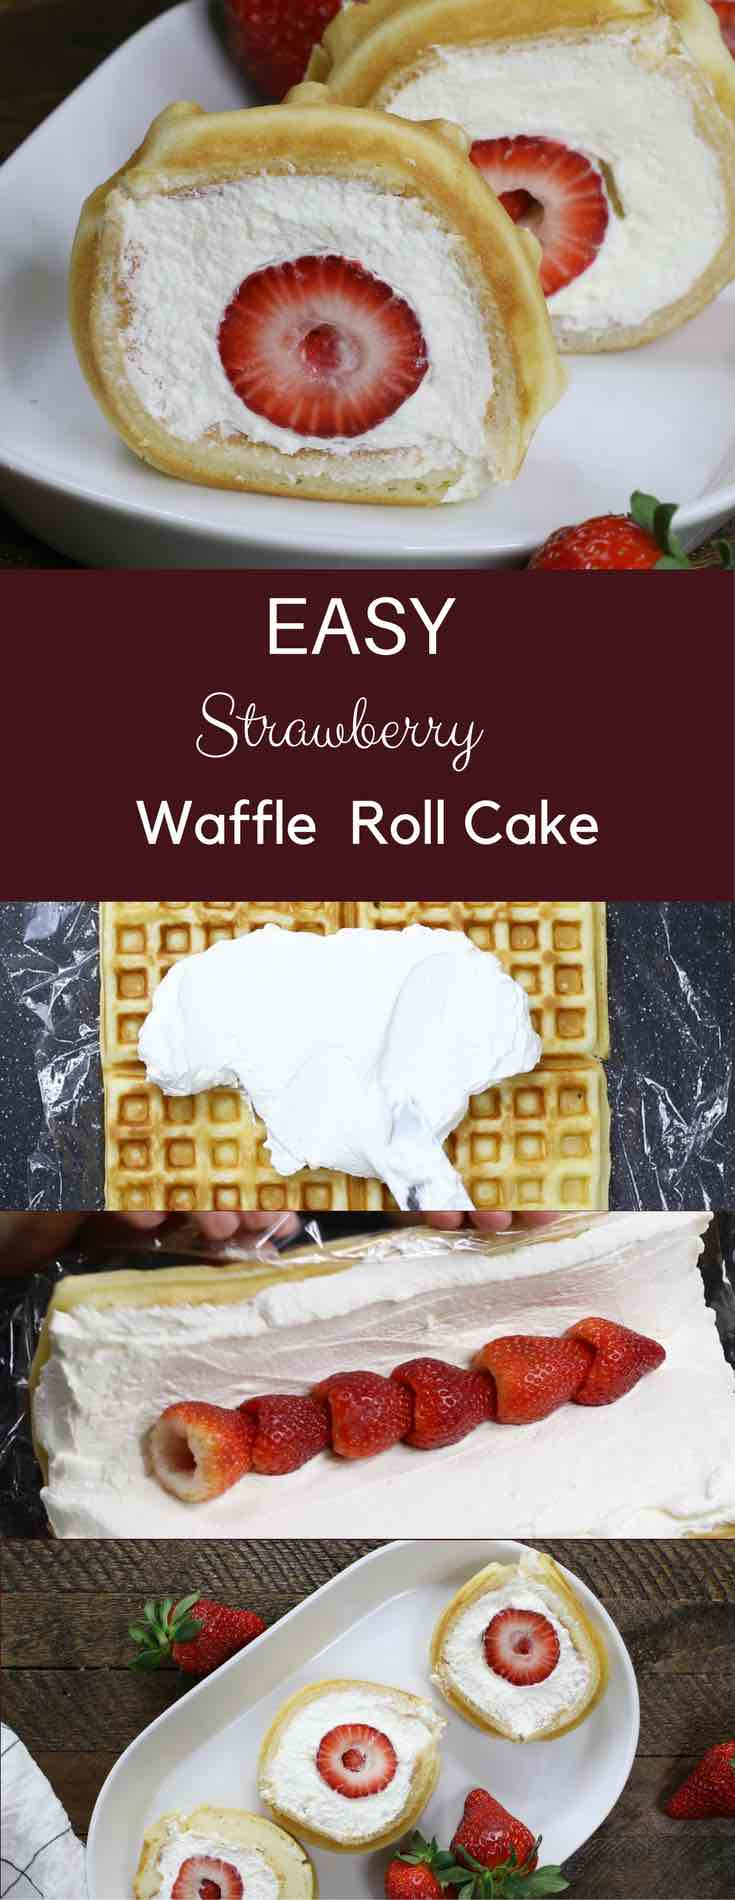 Strawberry Waffle Cake Roll - a quick and easy breakfast, snack or dessert made with waffle mix or frozen waffle, fresh strawberries, and whipped cream. Soft waffle topped with whipped cream, and strawberries. It melts in your mouth! So good and so beautiful! No bake dessert, vegetarian! | tipbuzz.com